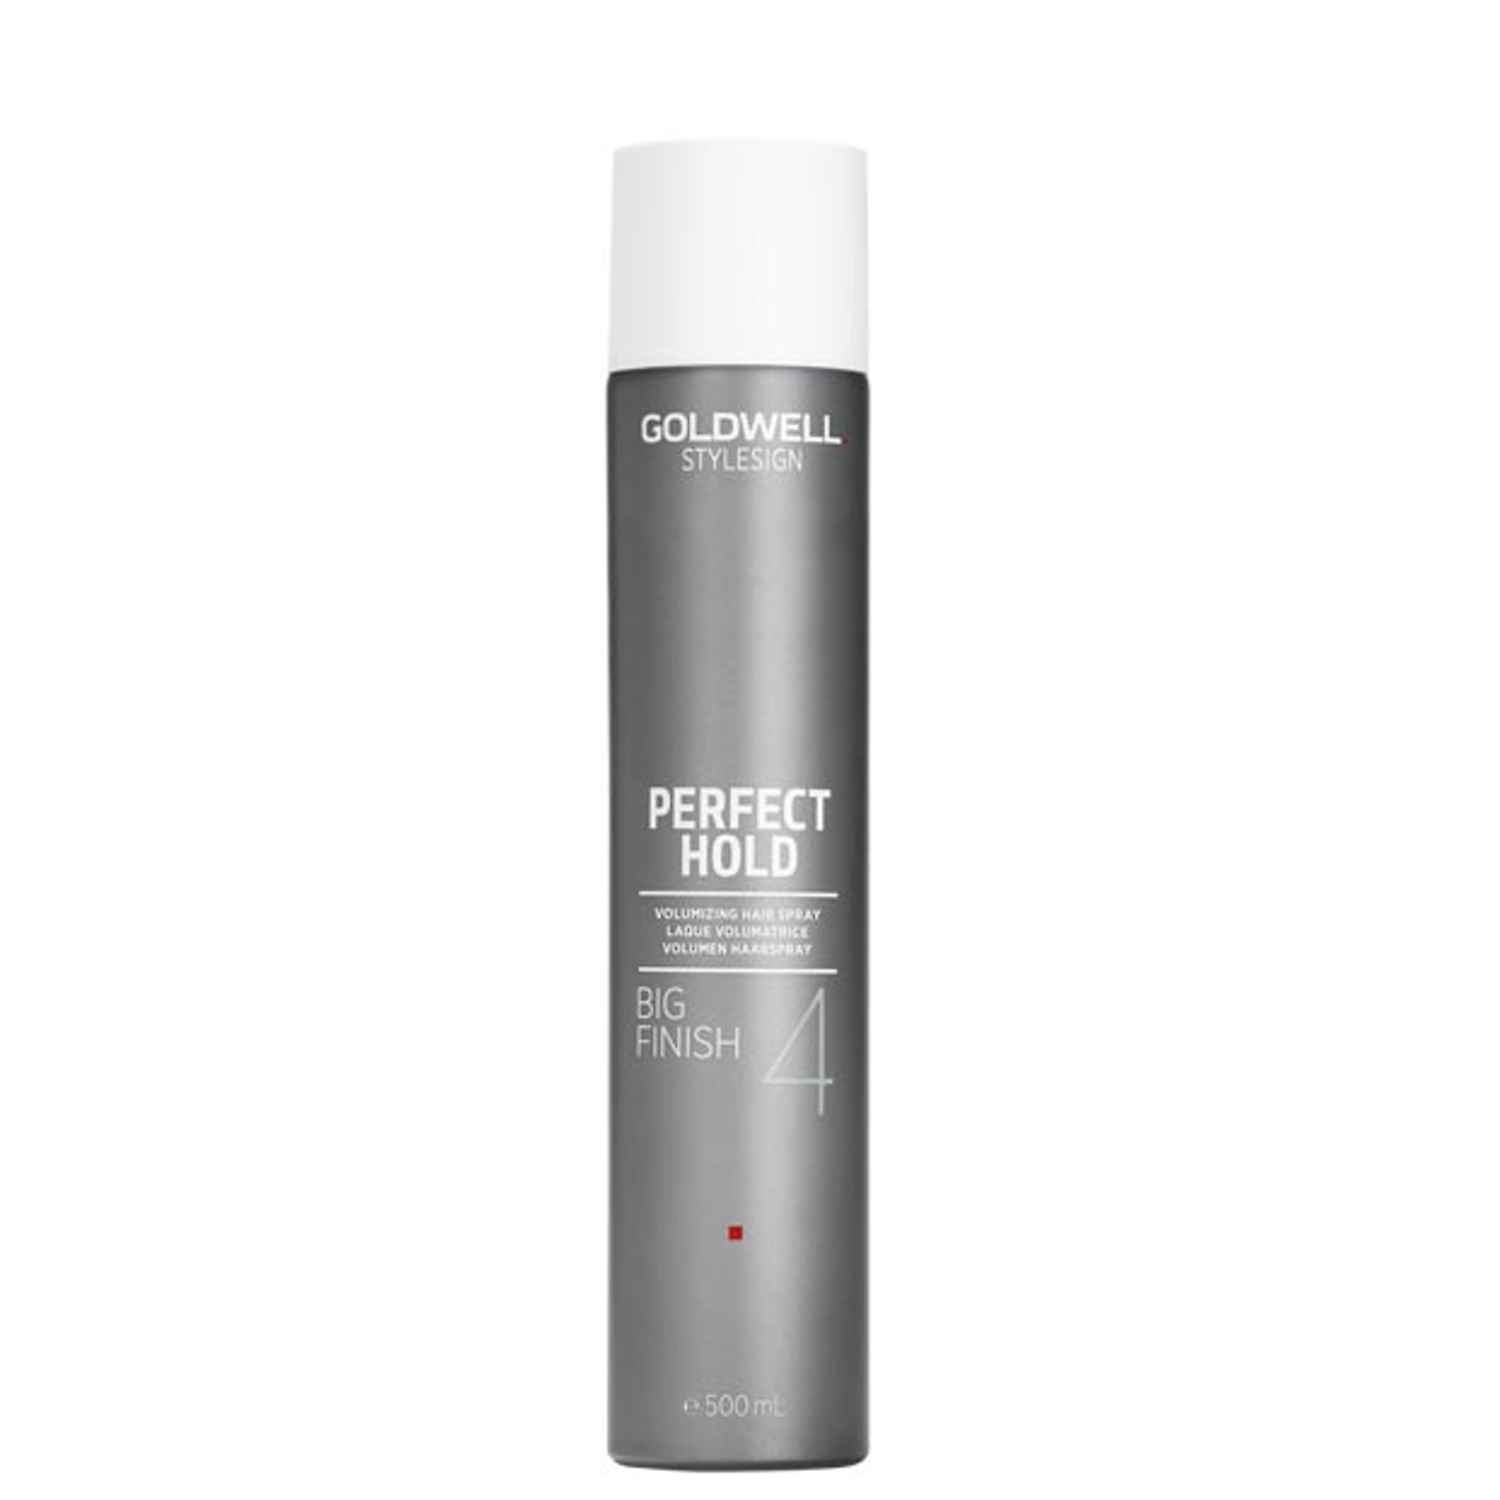 GOLDWELL Style Sign Perfect Hold BIG FINISH 500 ml